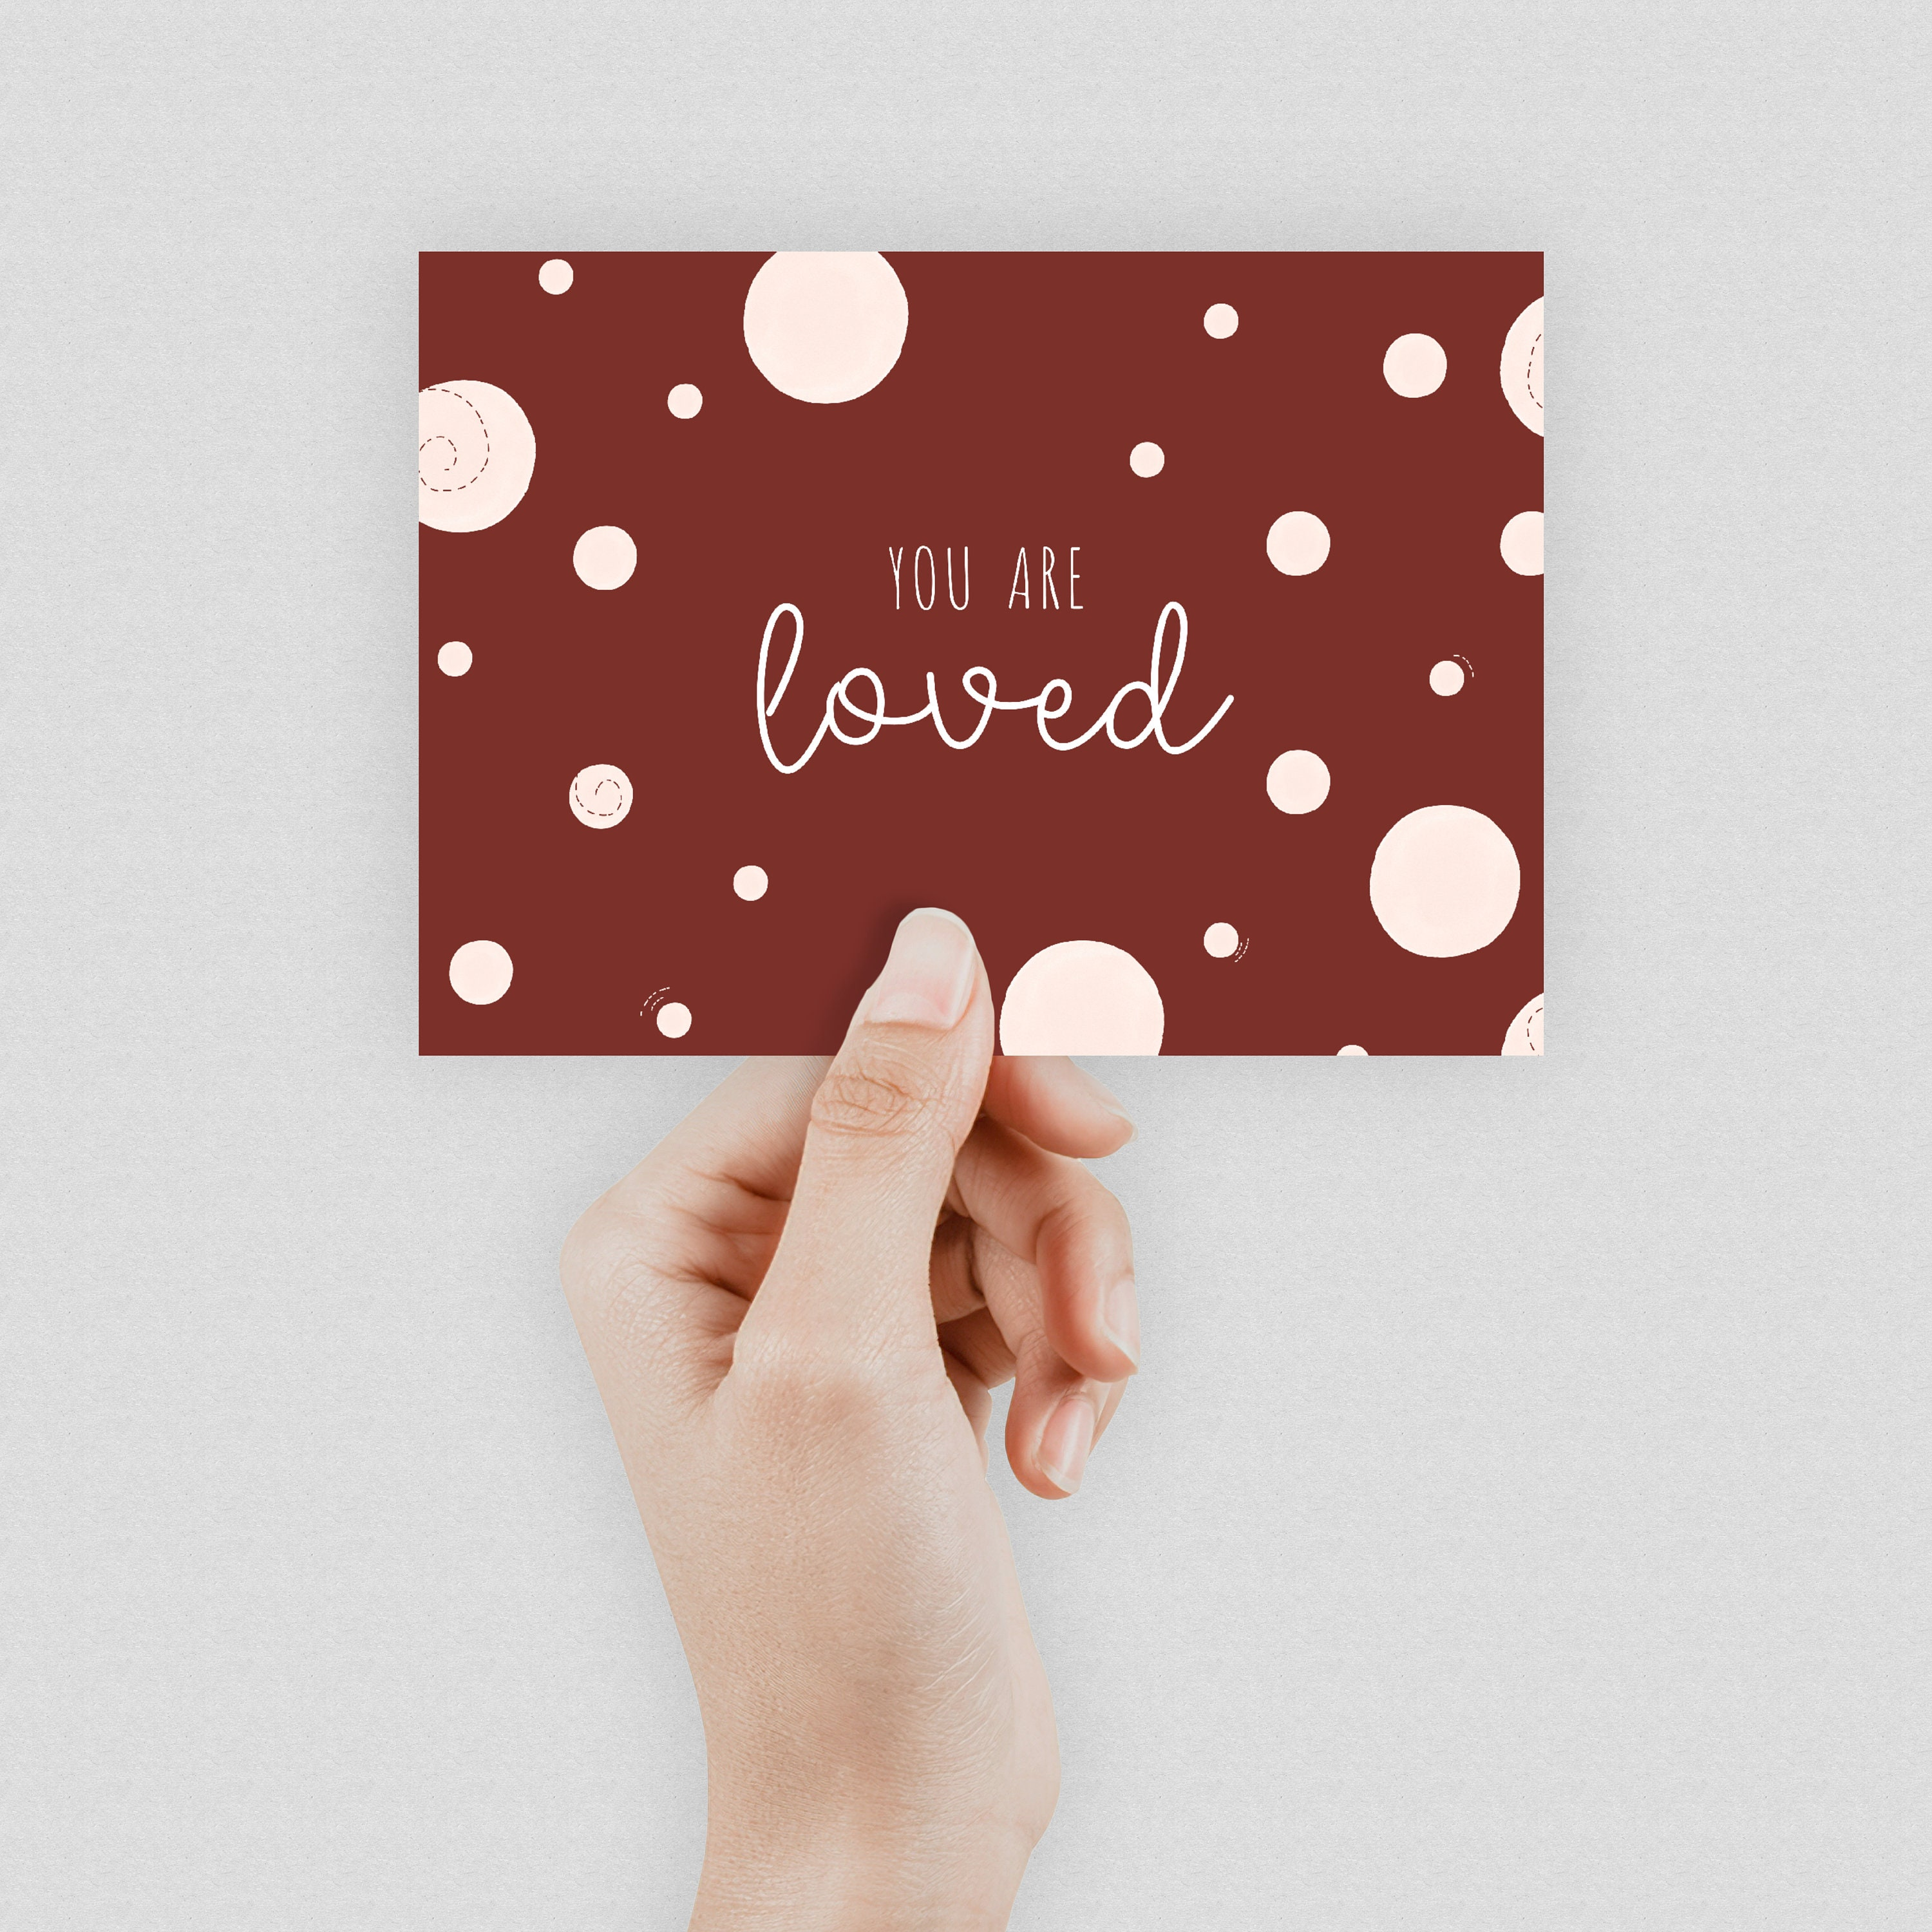 """A hand holding a bright burgundy postcard which says """"You are loved"""" in the middle"""